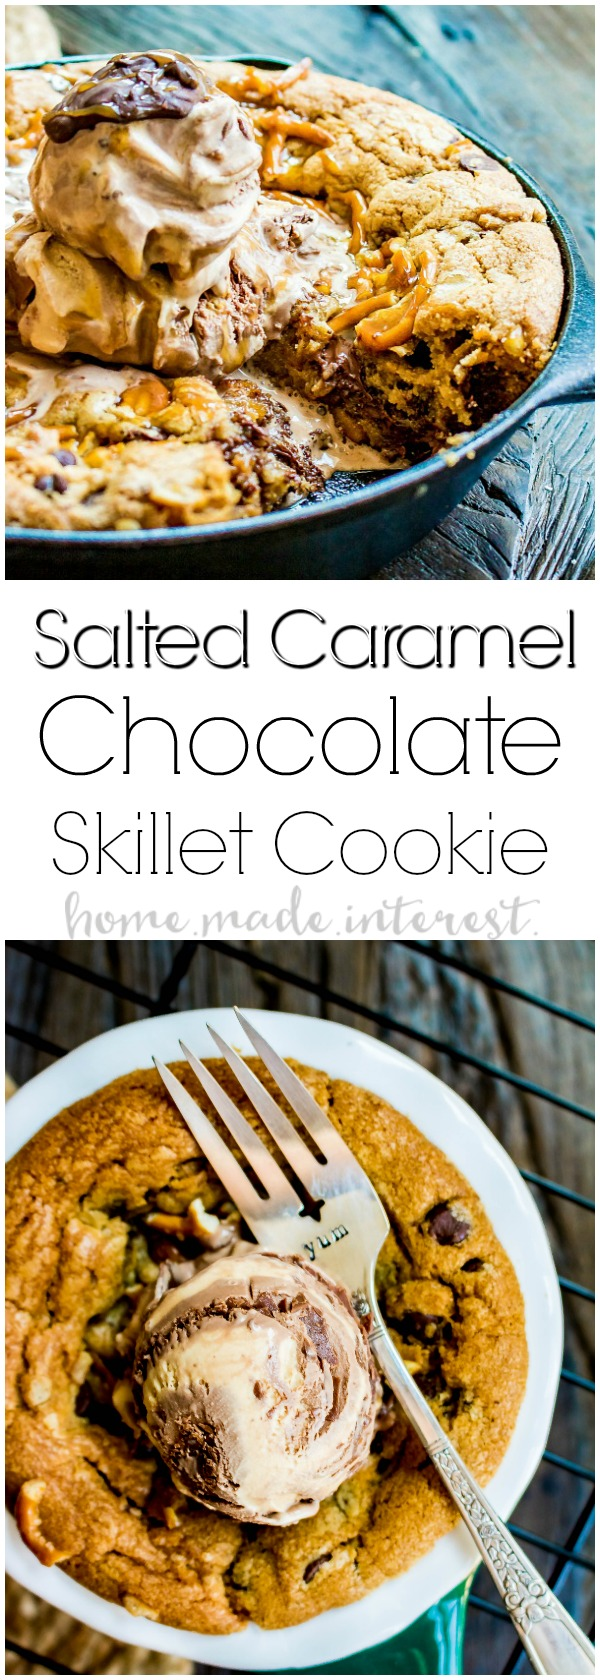 Salted Caramel Chocolate Skillet Cookie | This skillet cookie recipe is a chocolate chip cookie filled with rich creamy caramel, white chocolate chips, and salty, crunchy pretzels. It's baked in a cast iron skillet until everything melts together into a decadent cookie dessert topped with a couple of scoops of ice cream. This cast iron skillet dessert is an easy dessert recipe that the whole family will love.